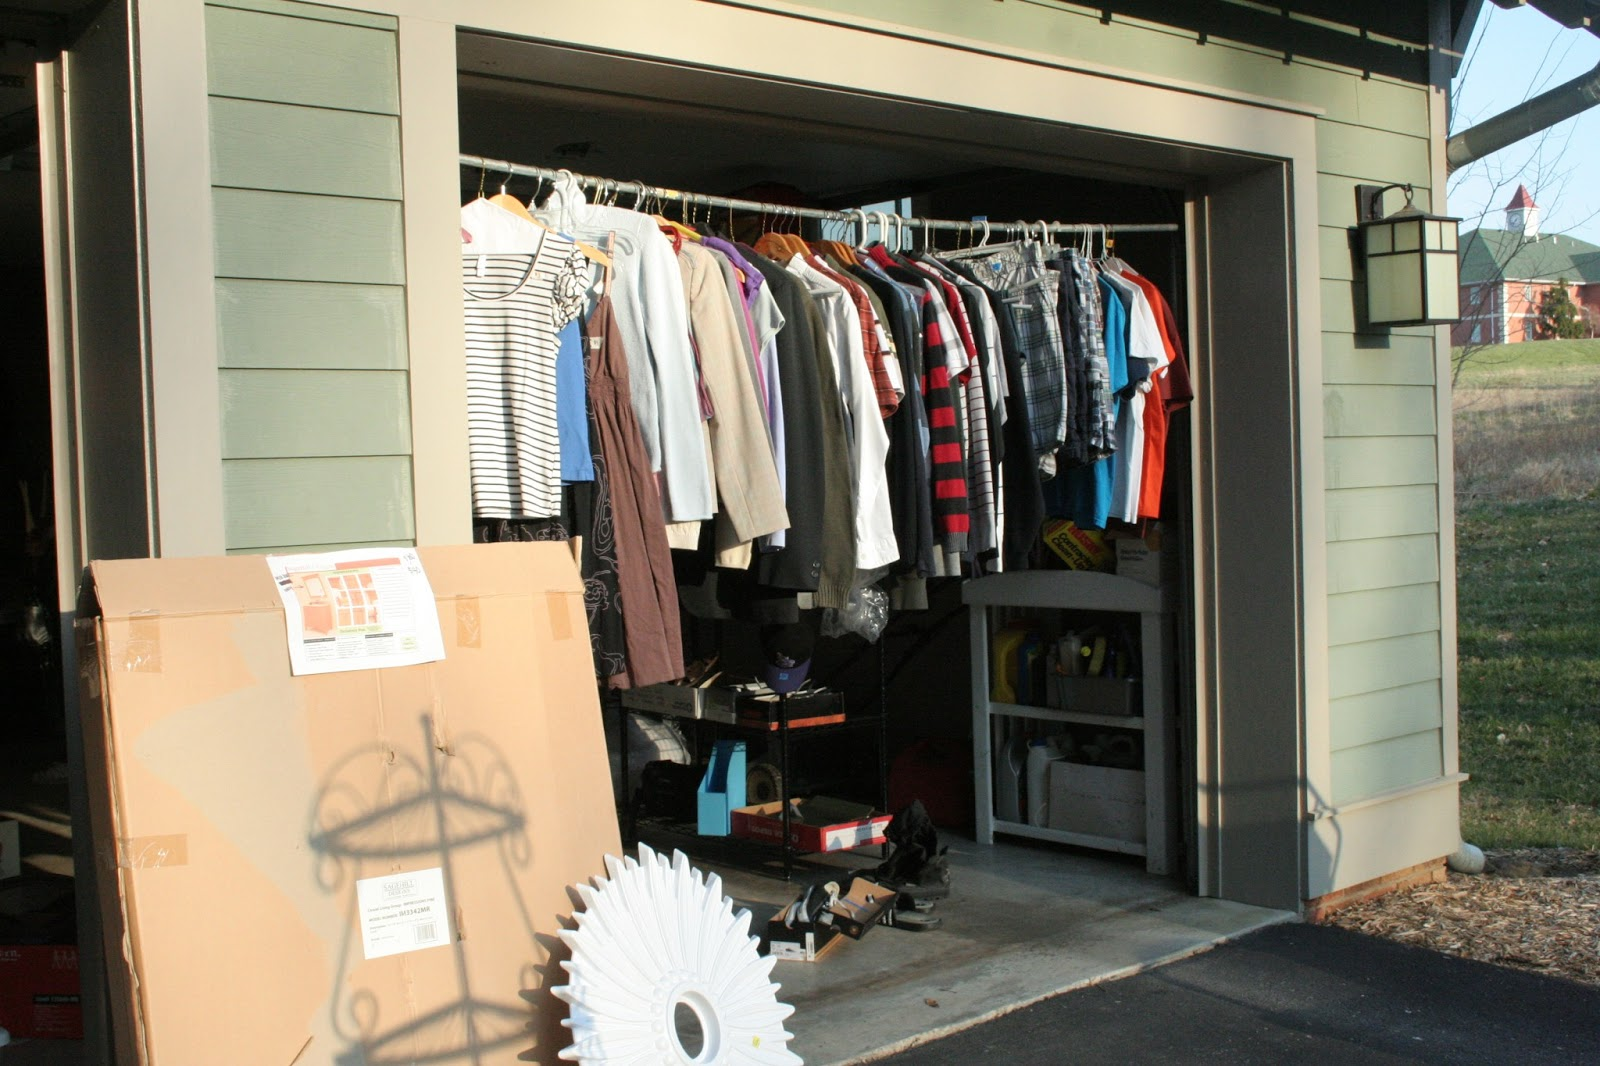 How To Hang Clothes At A Garage Sale on homemade round clothes rack for garage sale, ghetto garage sale, yard sale, ideas for garage to hang clothes on sale,